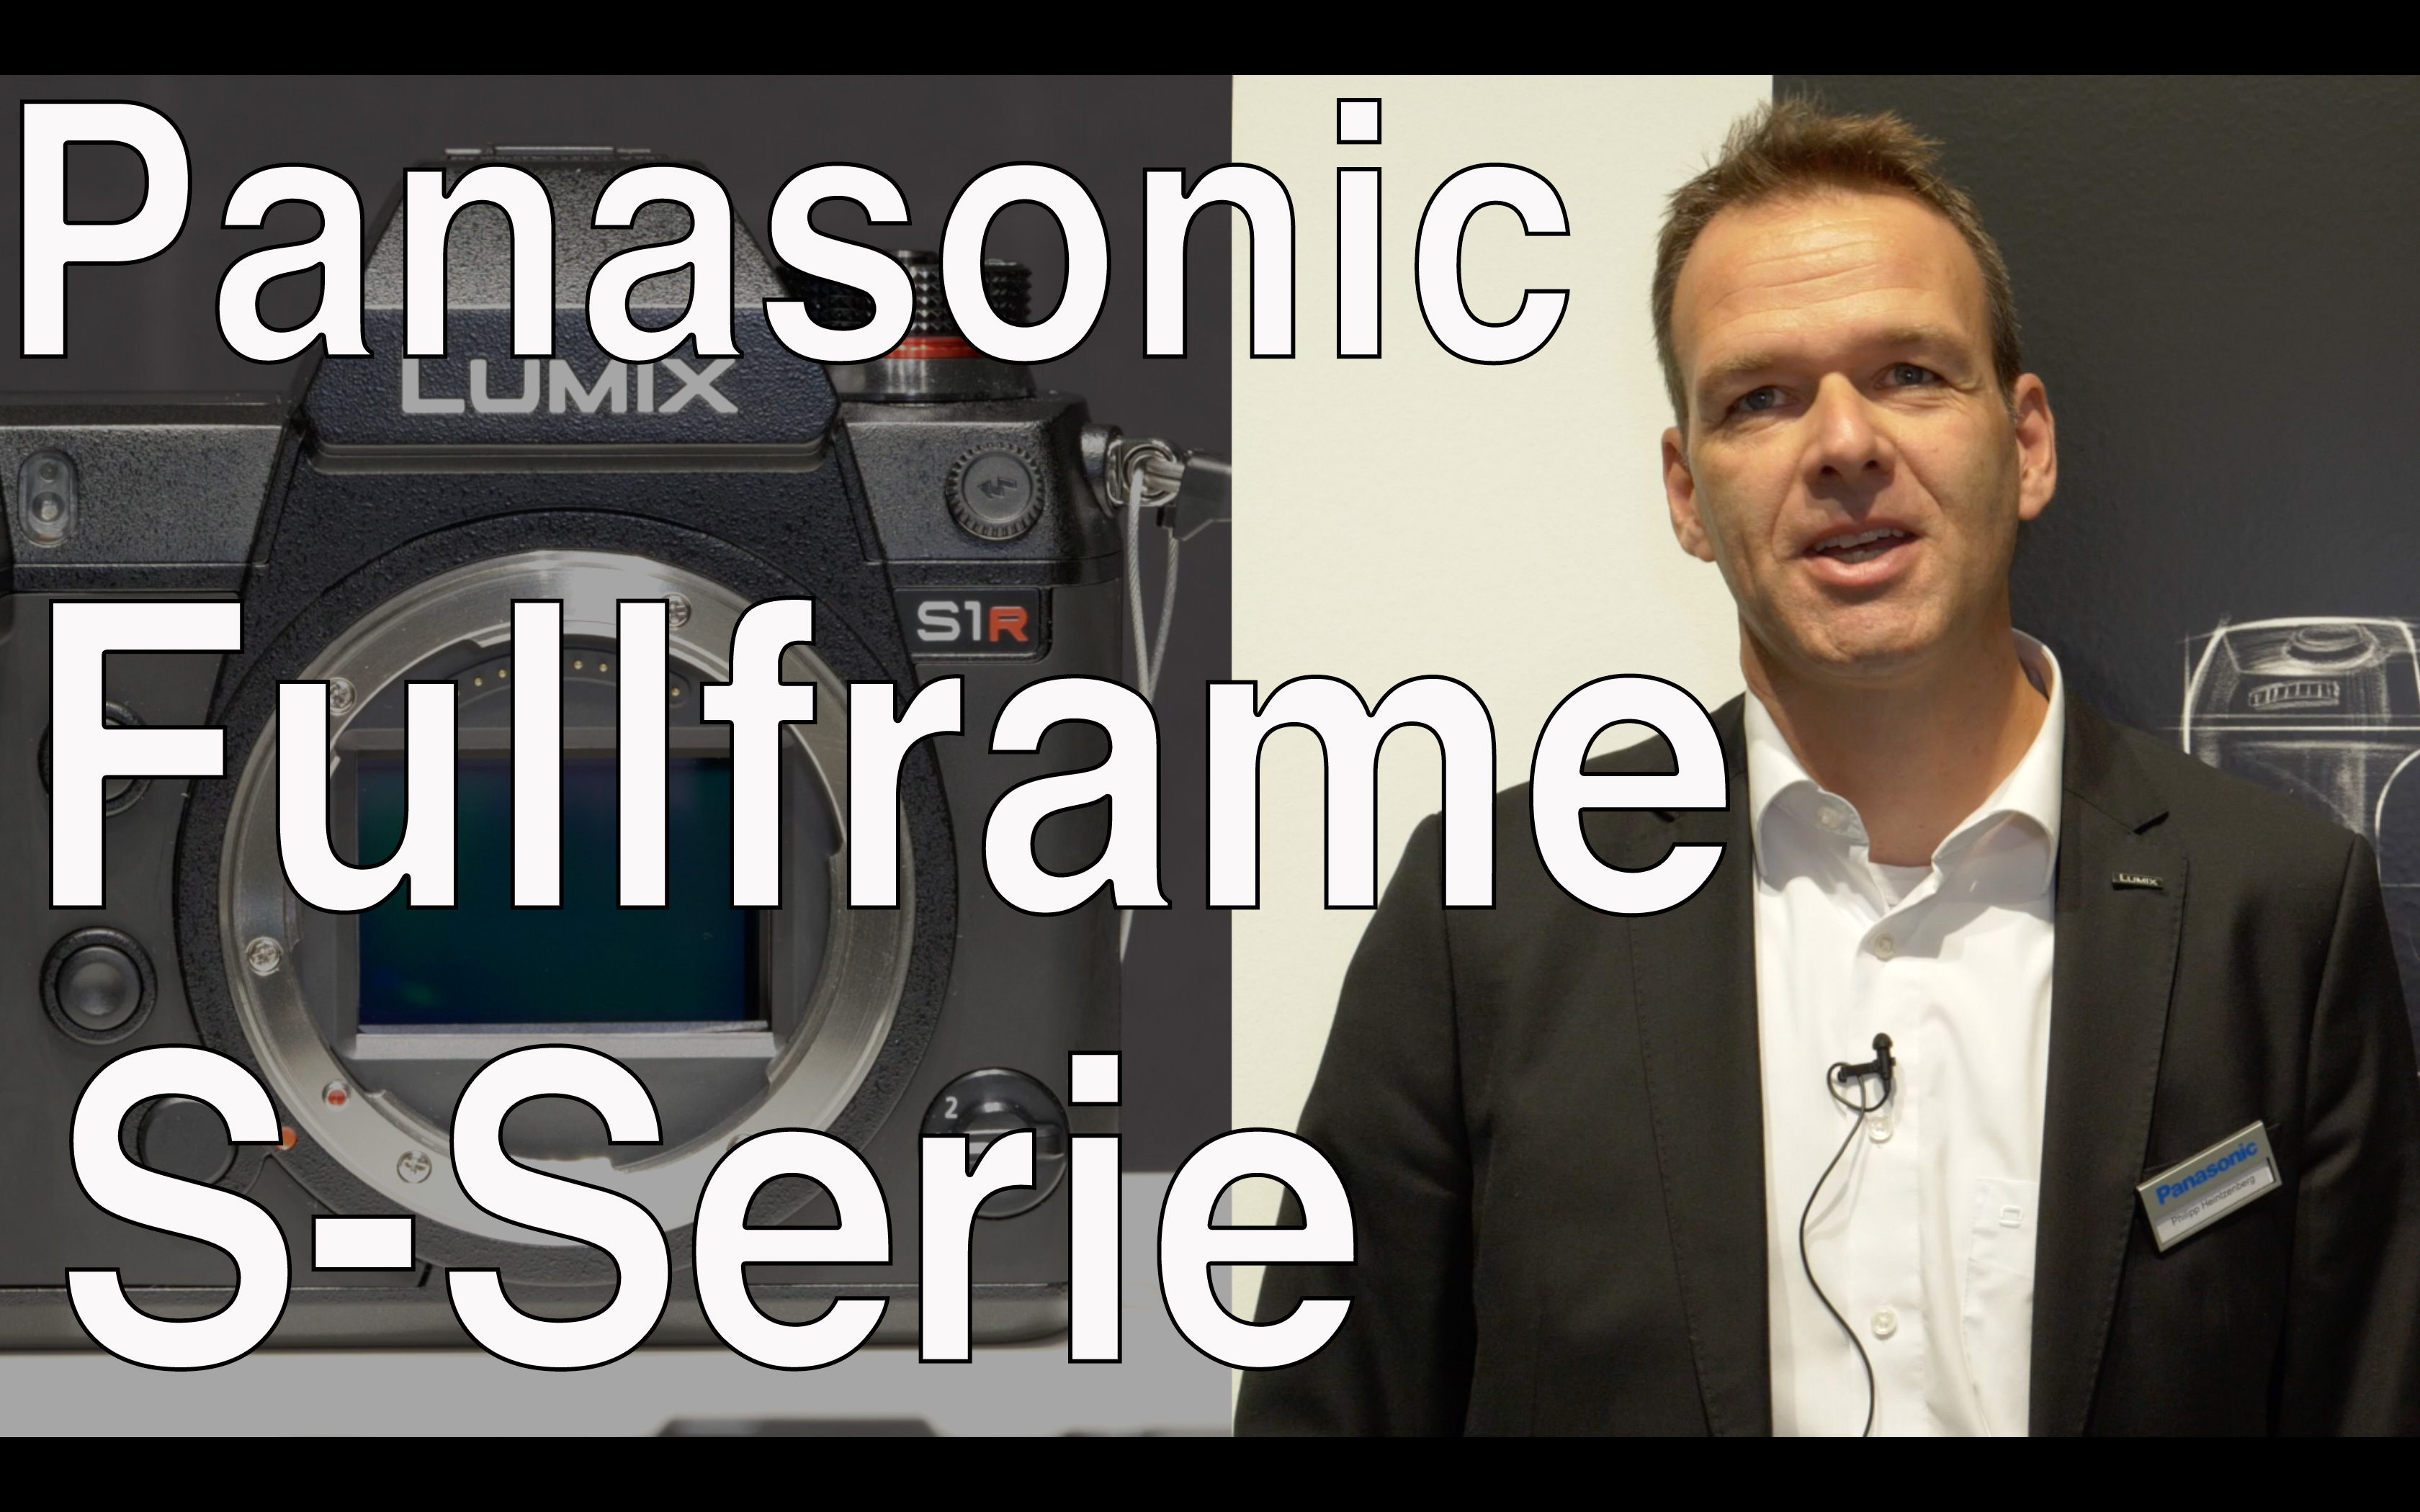 Video Interview: Panasonic Fullframe S1R & S1: 4K 60p, ergonomics, 10 Bit? and much more // Photokin